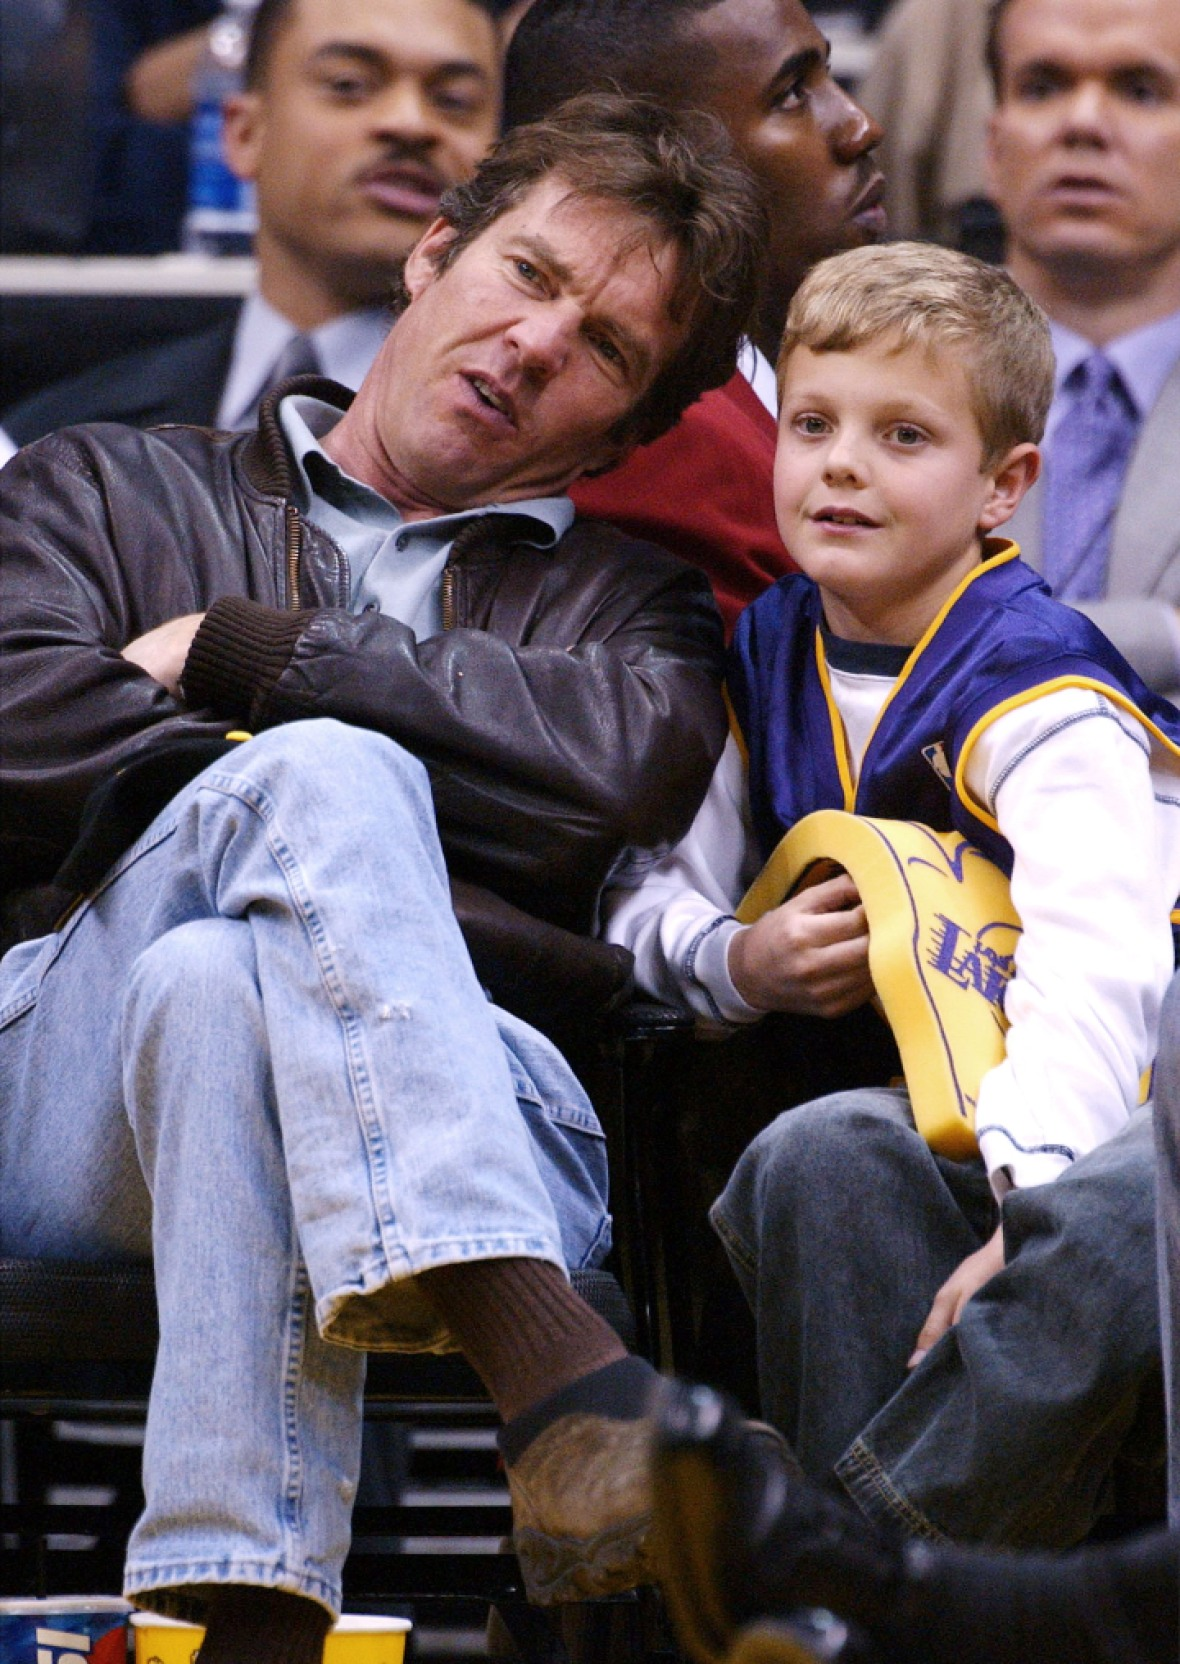 dennis quaid jack quaid getty images